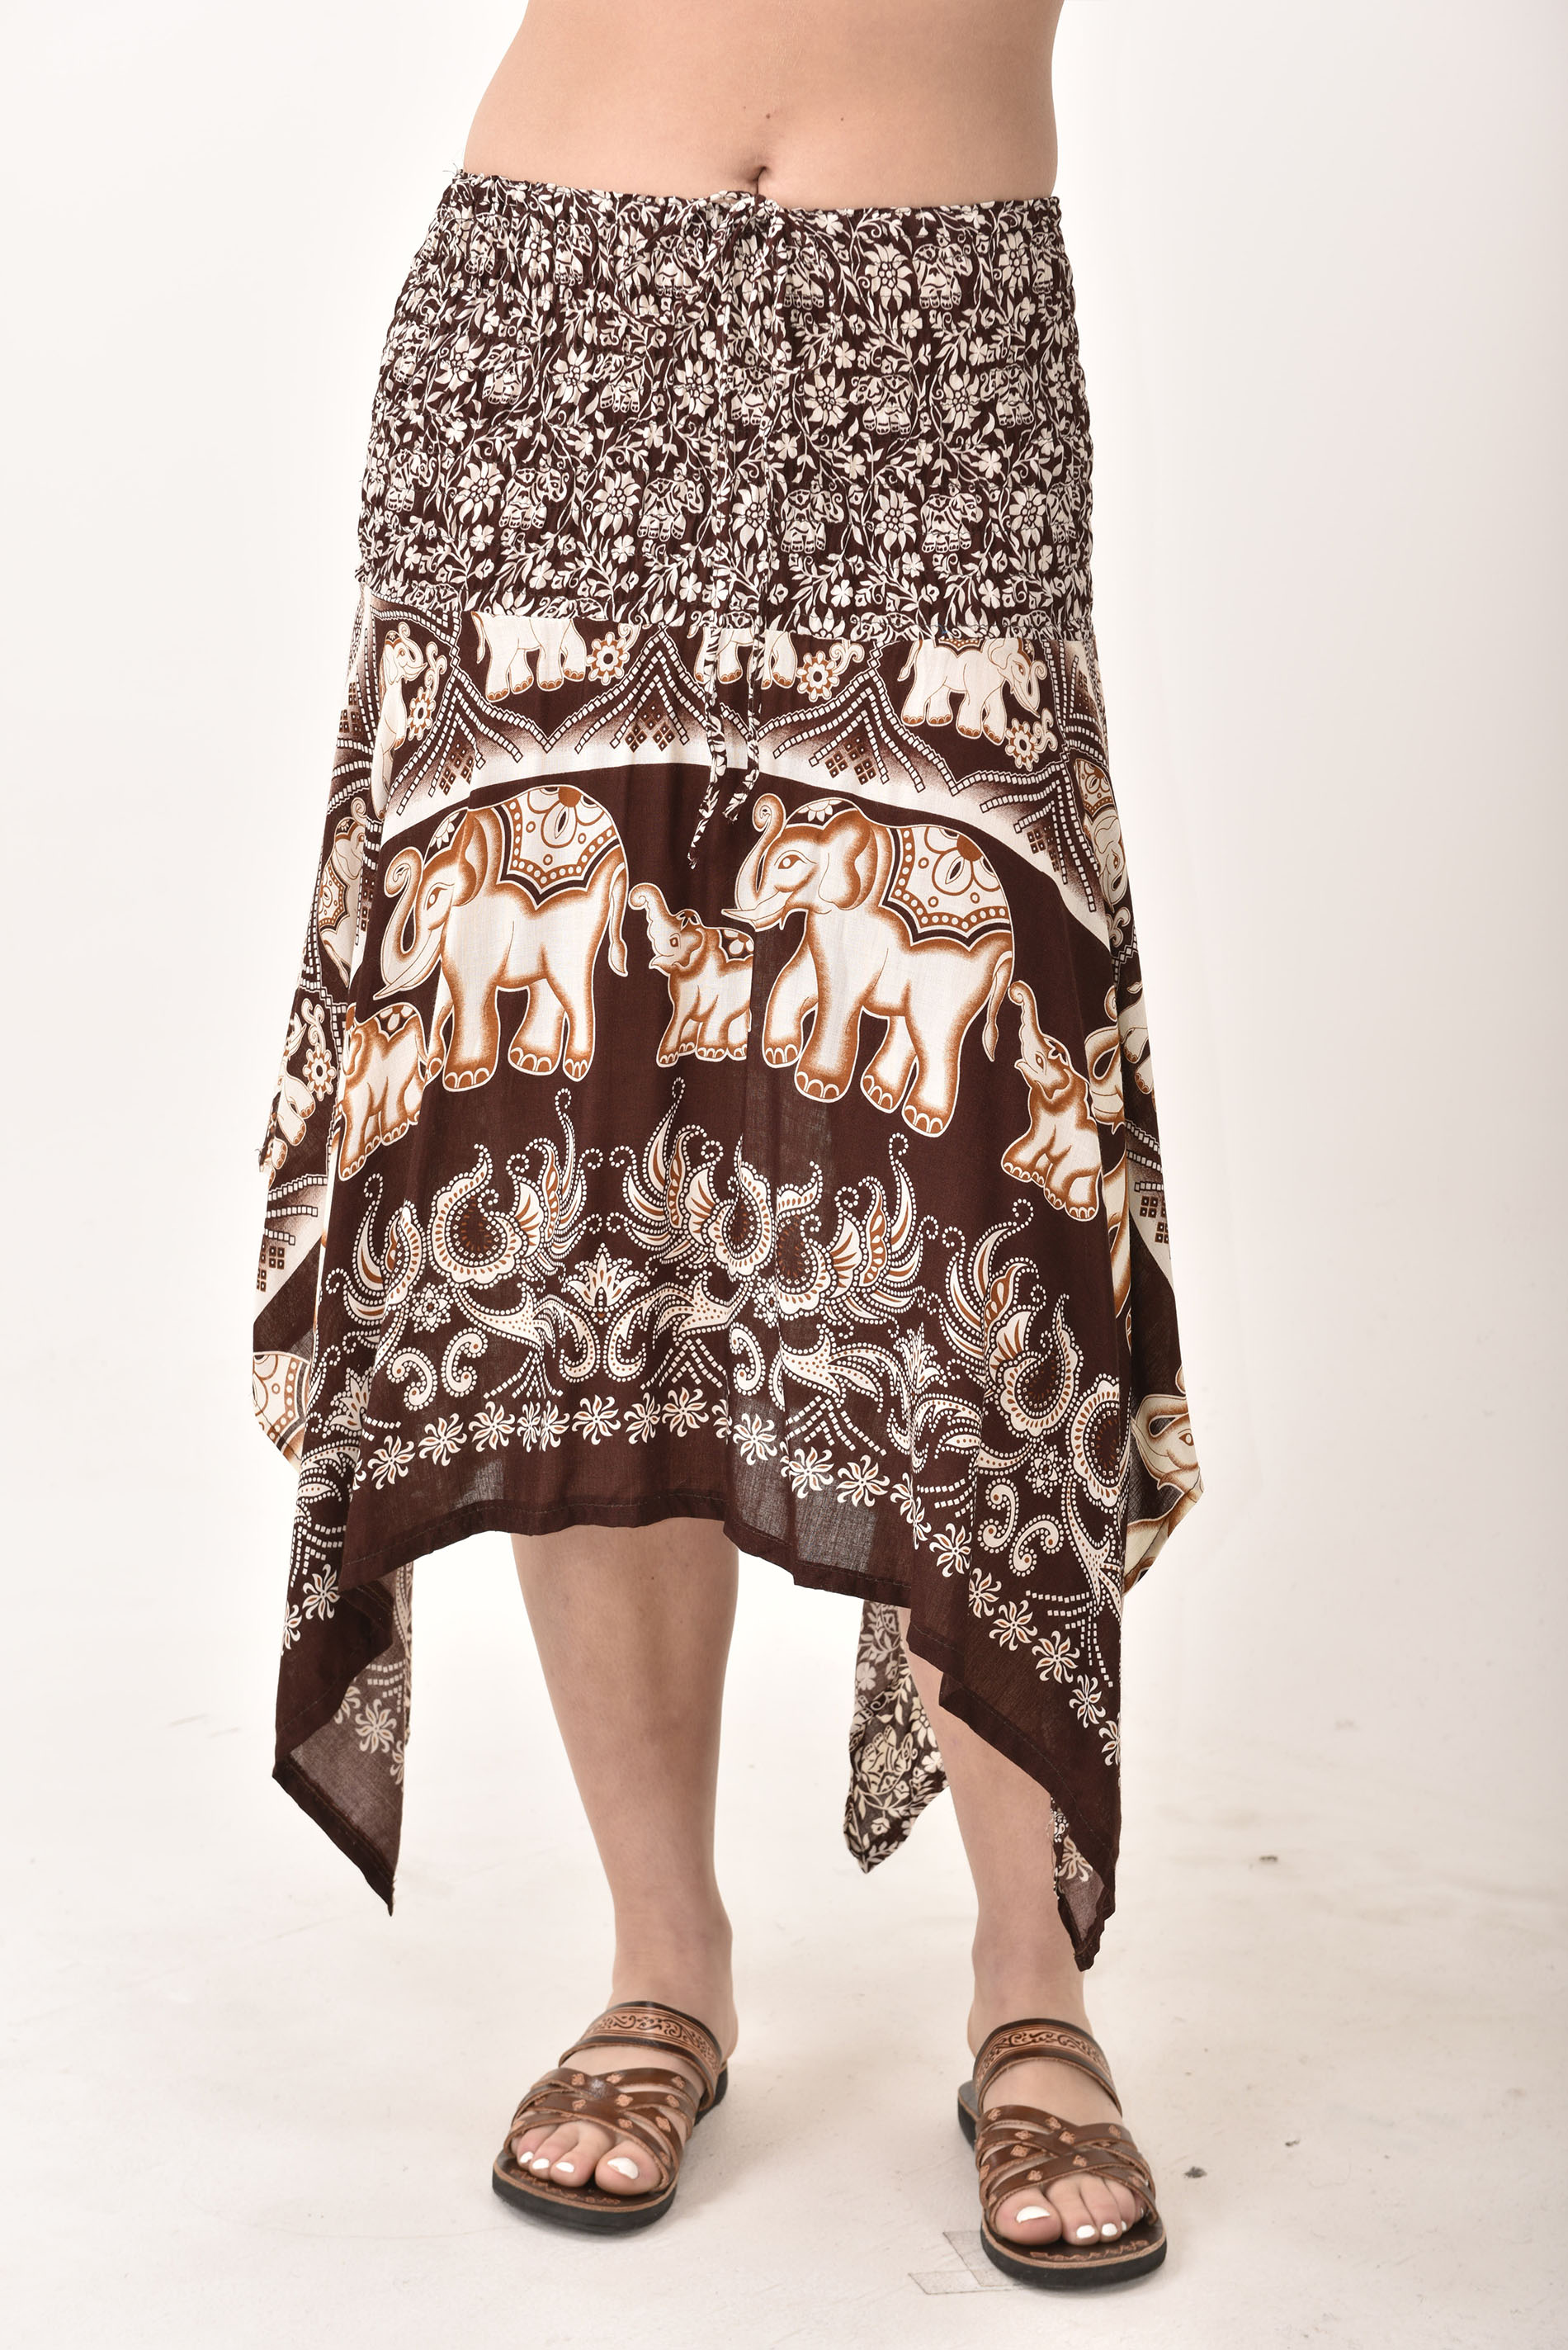 Elephant Print Fairy Dress / Skirt Brown